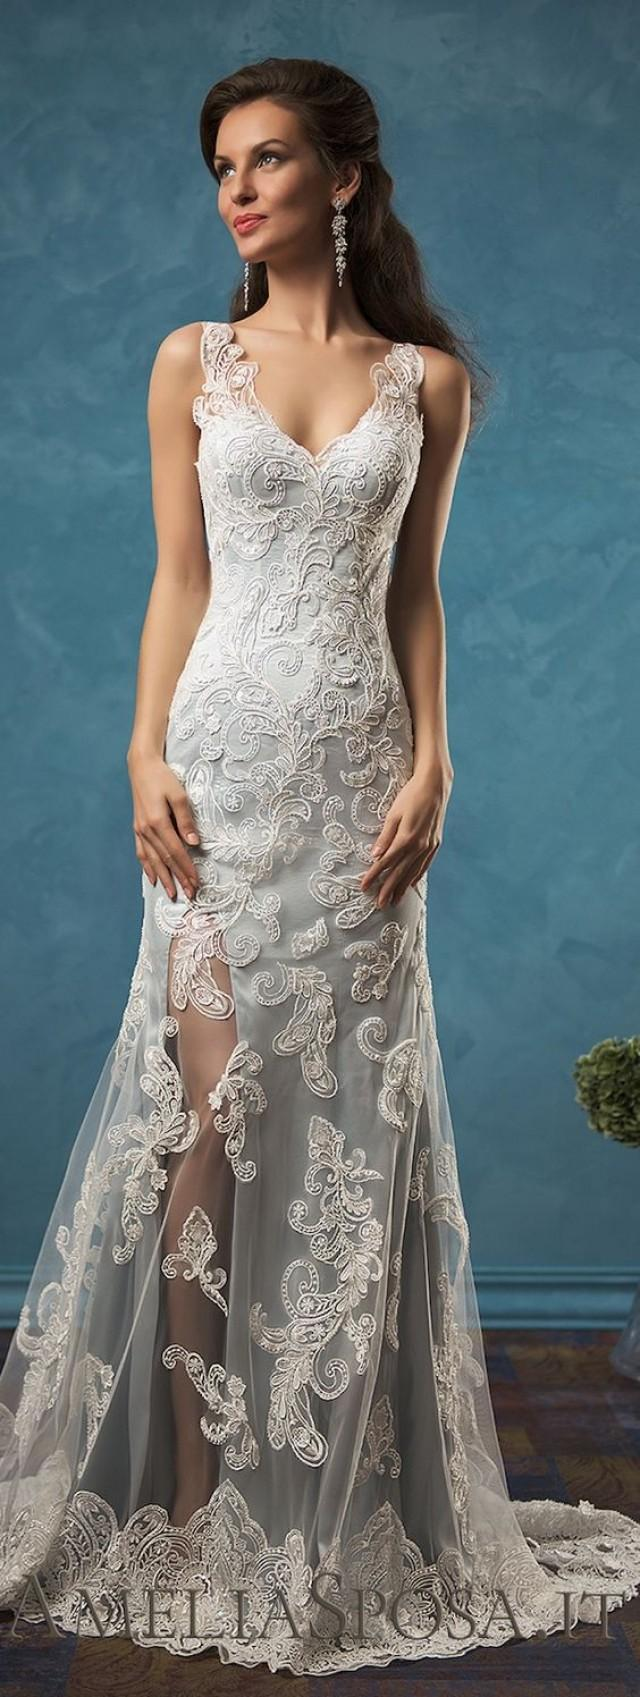 top 100 wedding dresses 2017 from top designers 2628874